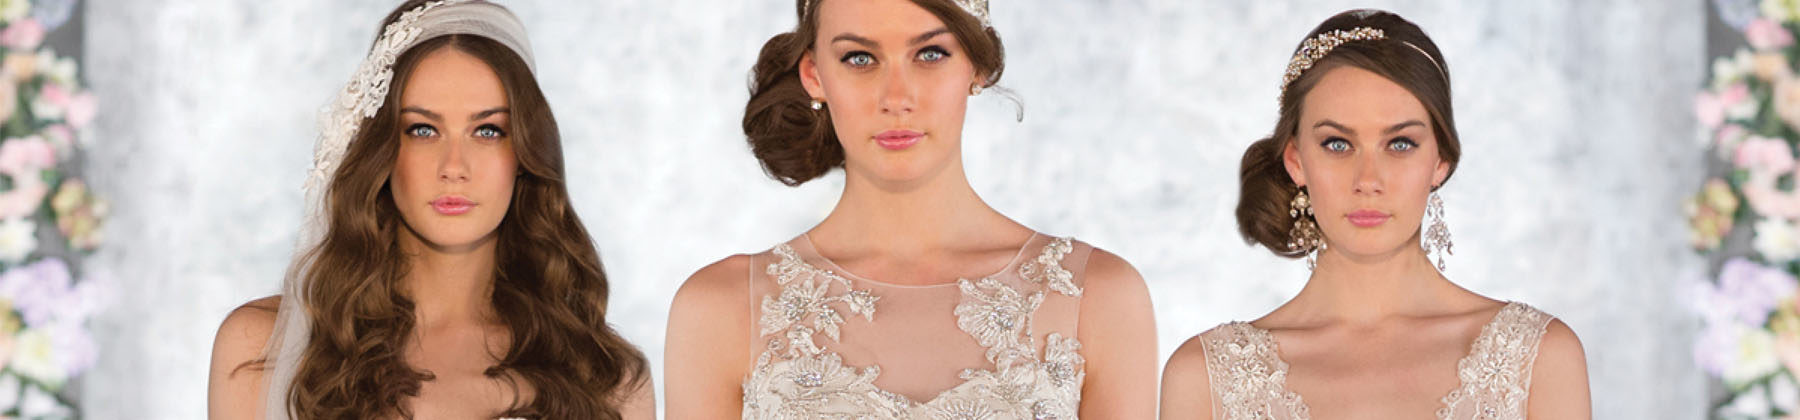 stella york wedding dress prices bella bridal gallery bella bridal gallery in west bloomfield is inspiring